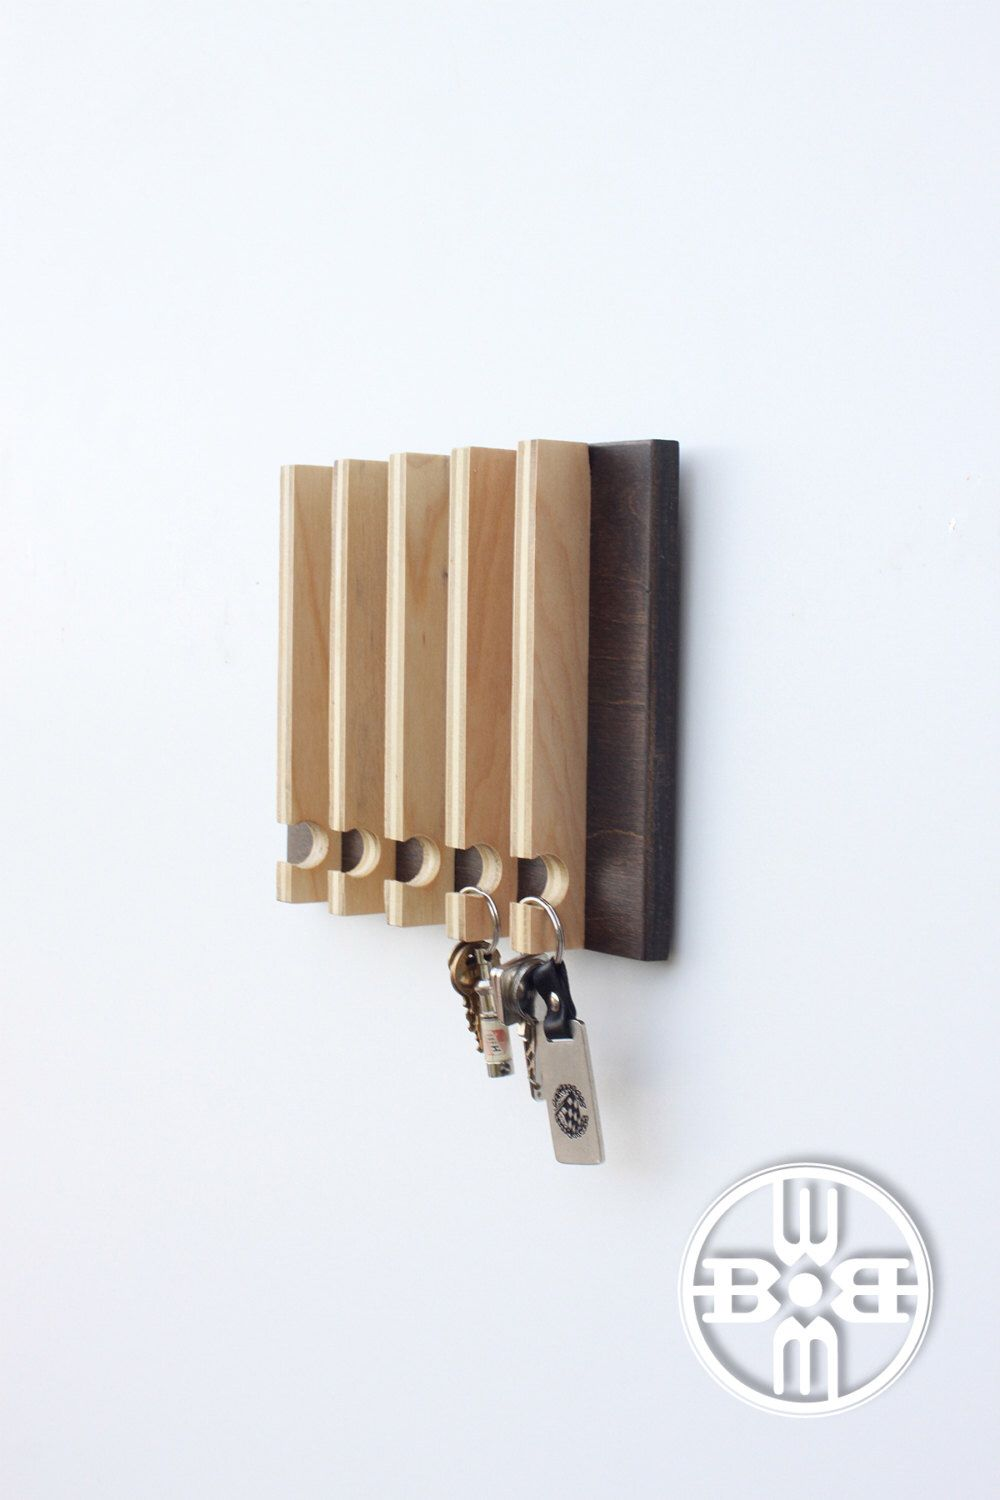 Modern Key Rack Modern Entryway Wall Storage Gift For Men Natural Wood Key Holder Hanging Key Podstavka Dlya Klyuchej Derevyannye Veshalki Derzhalki Dlya Klyuchej